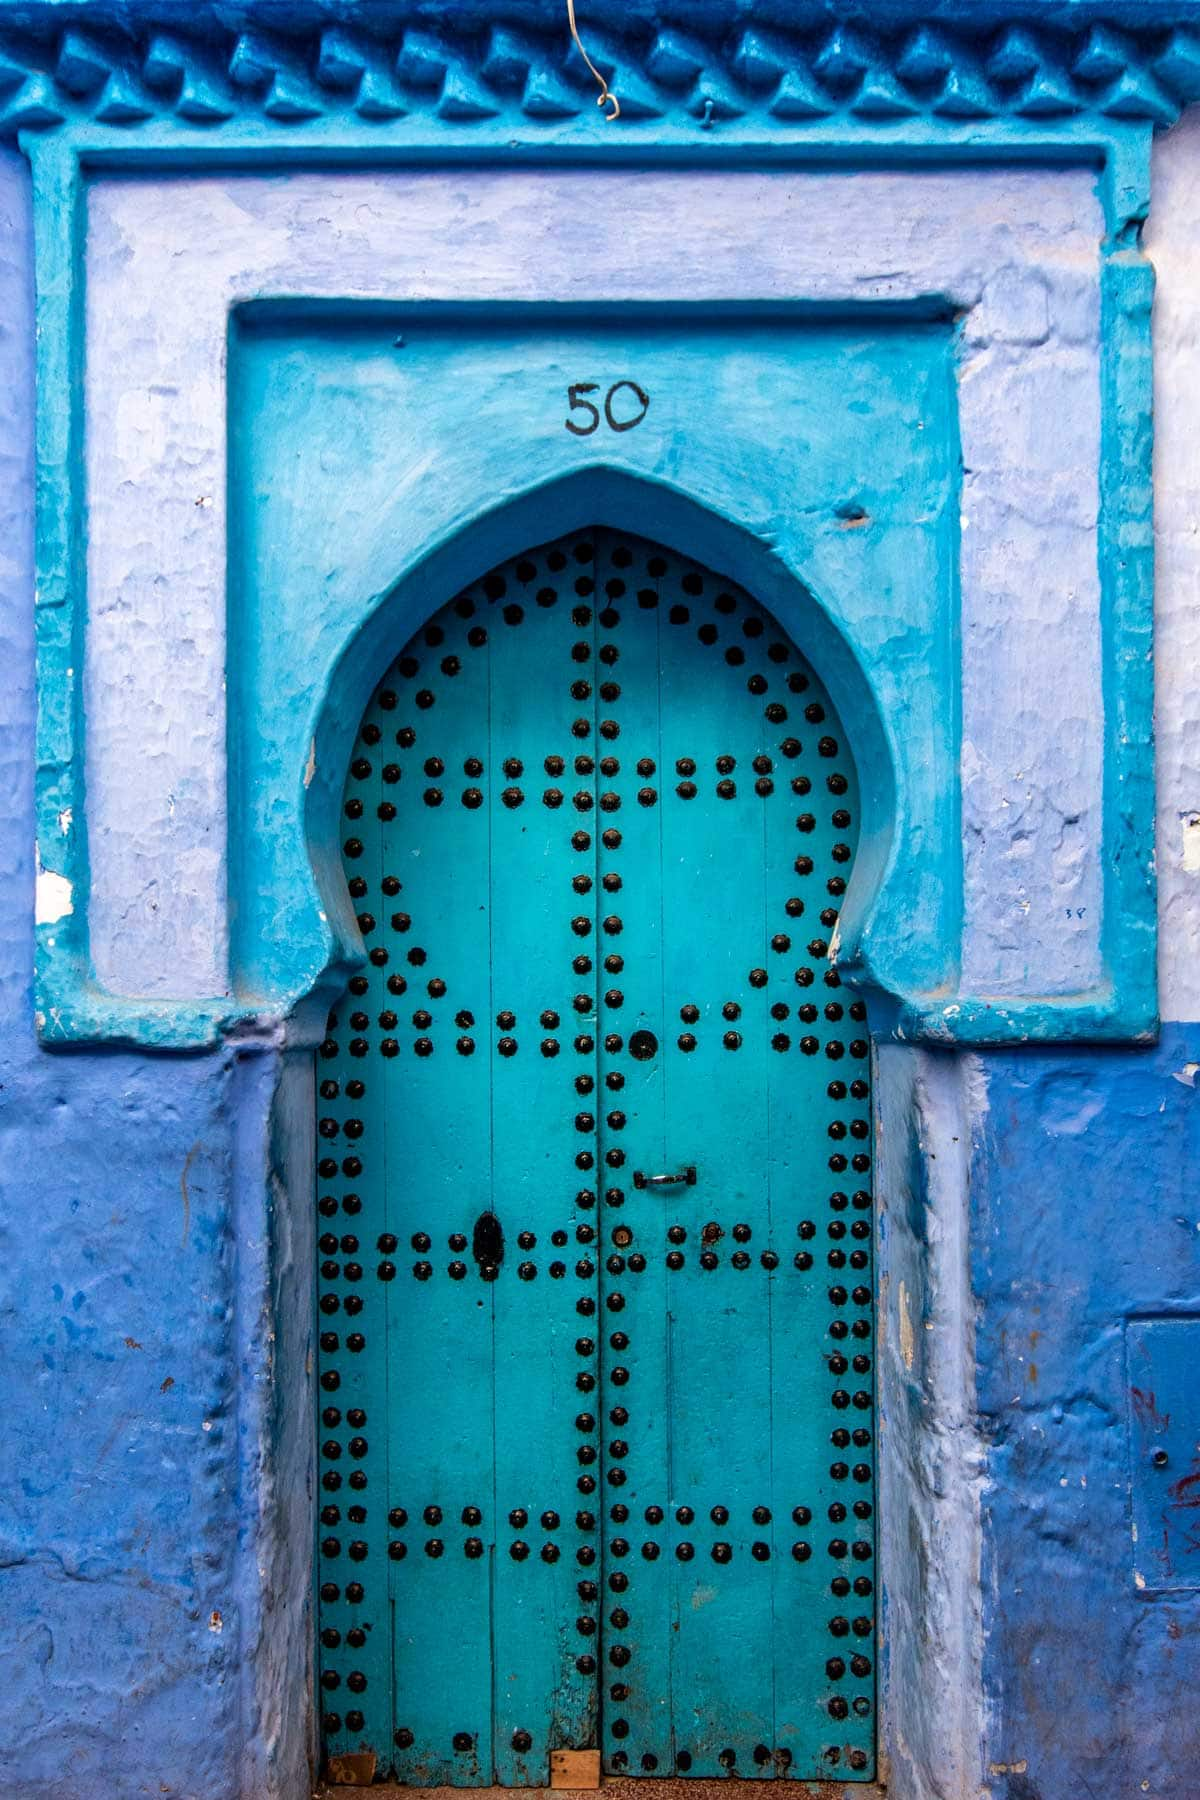 chefchaouen photo guide - beautiful door